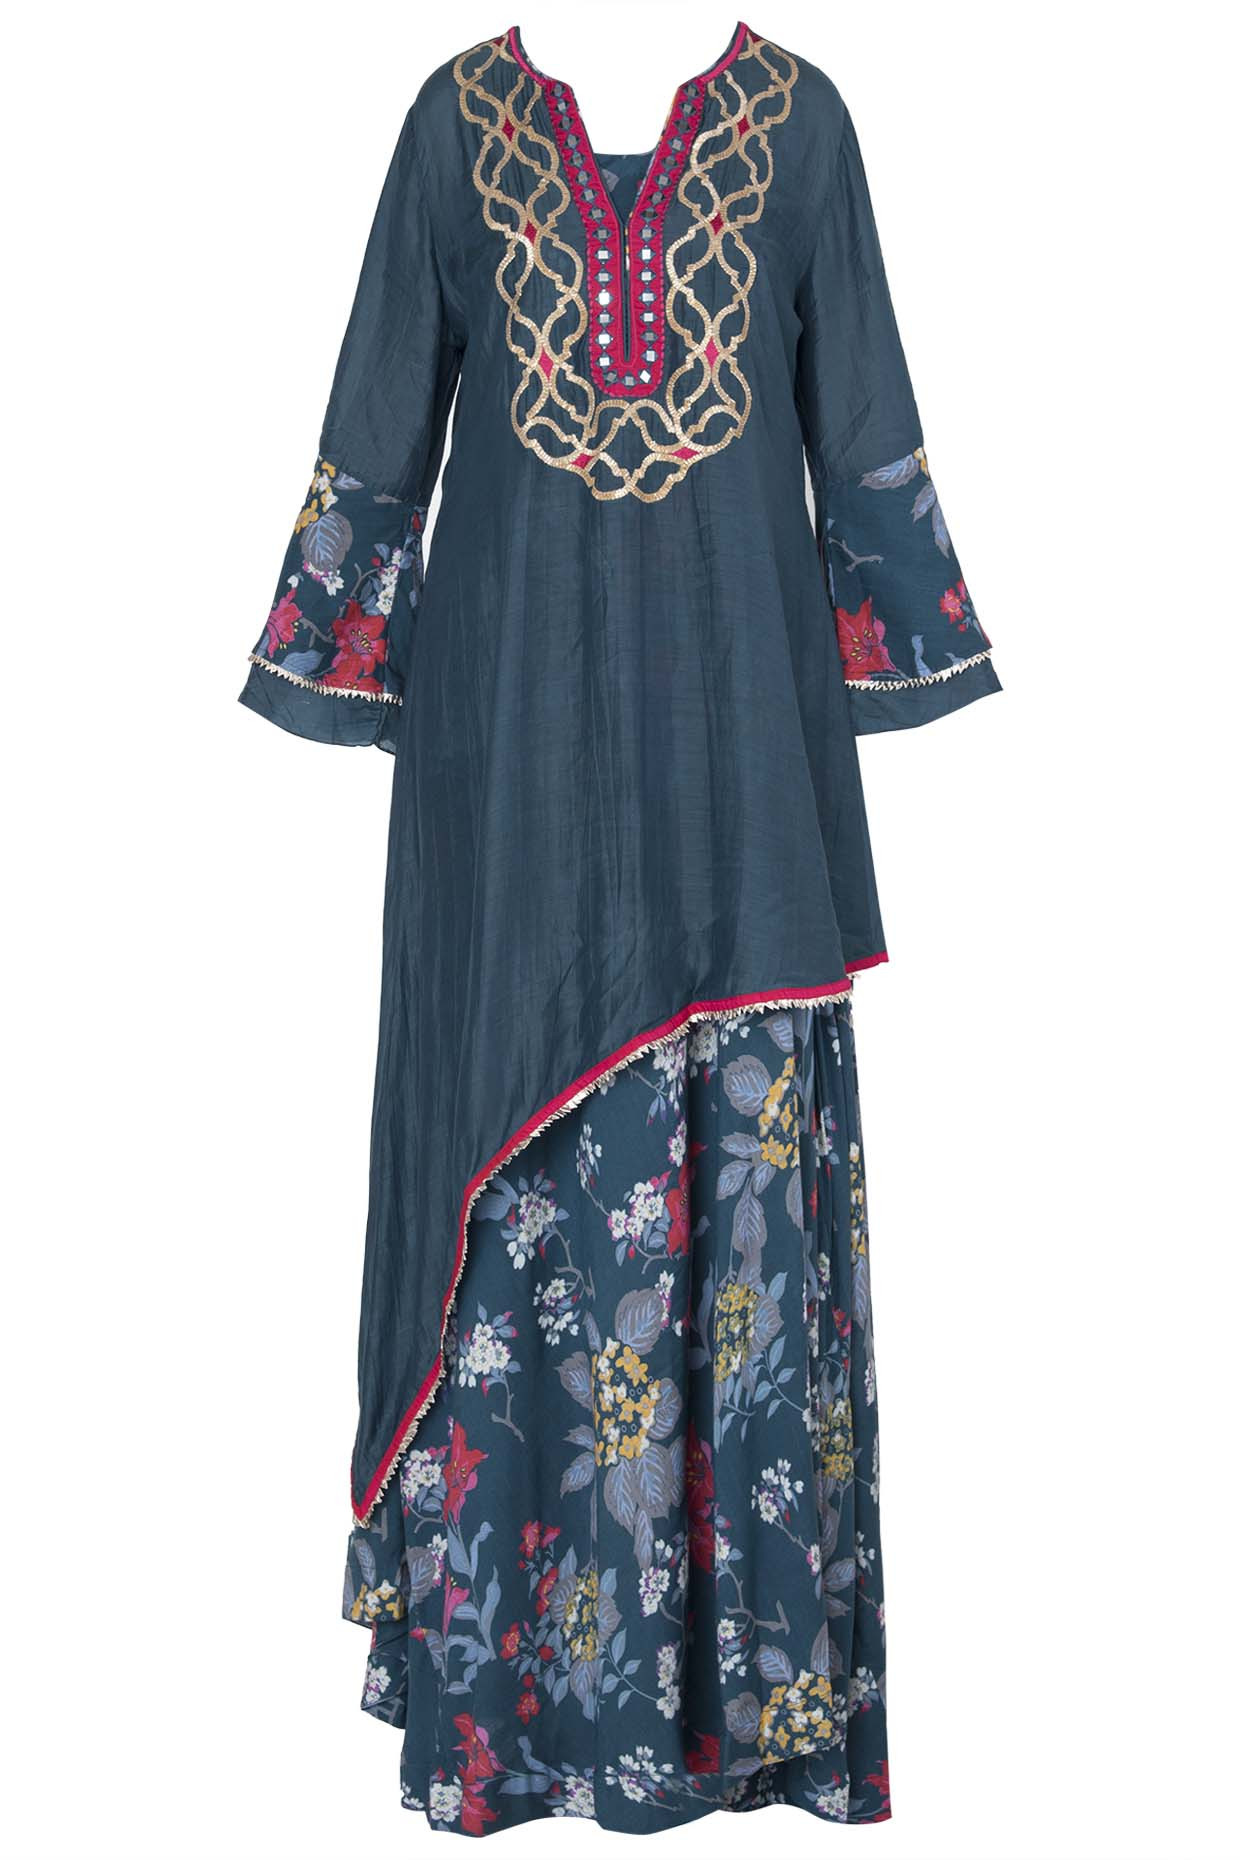 Teal High Low Embroidered and Printed Kurta Set by Gopi Vaid